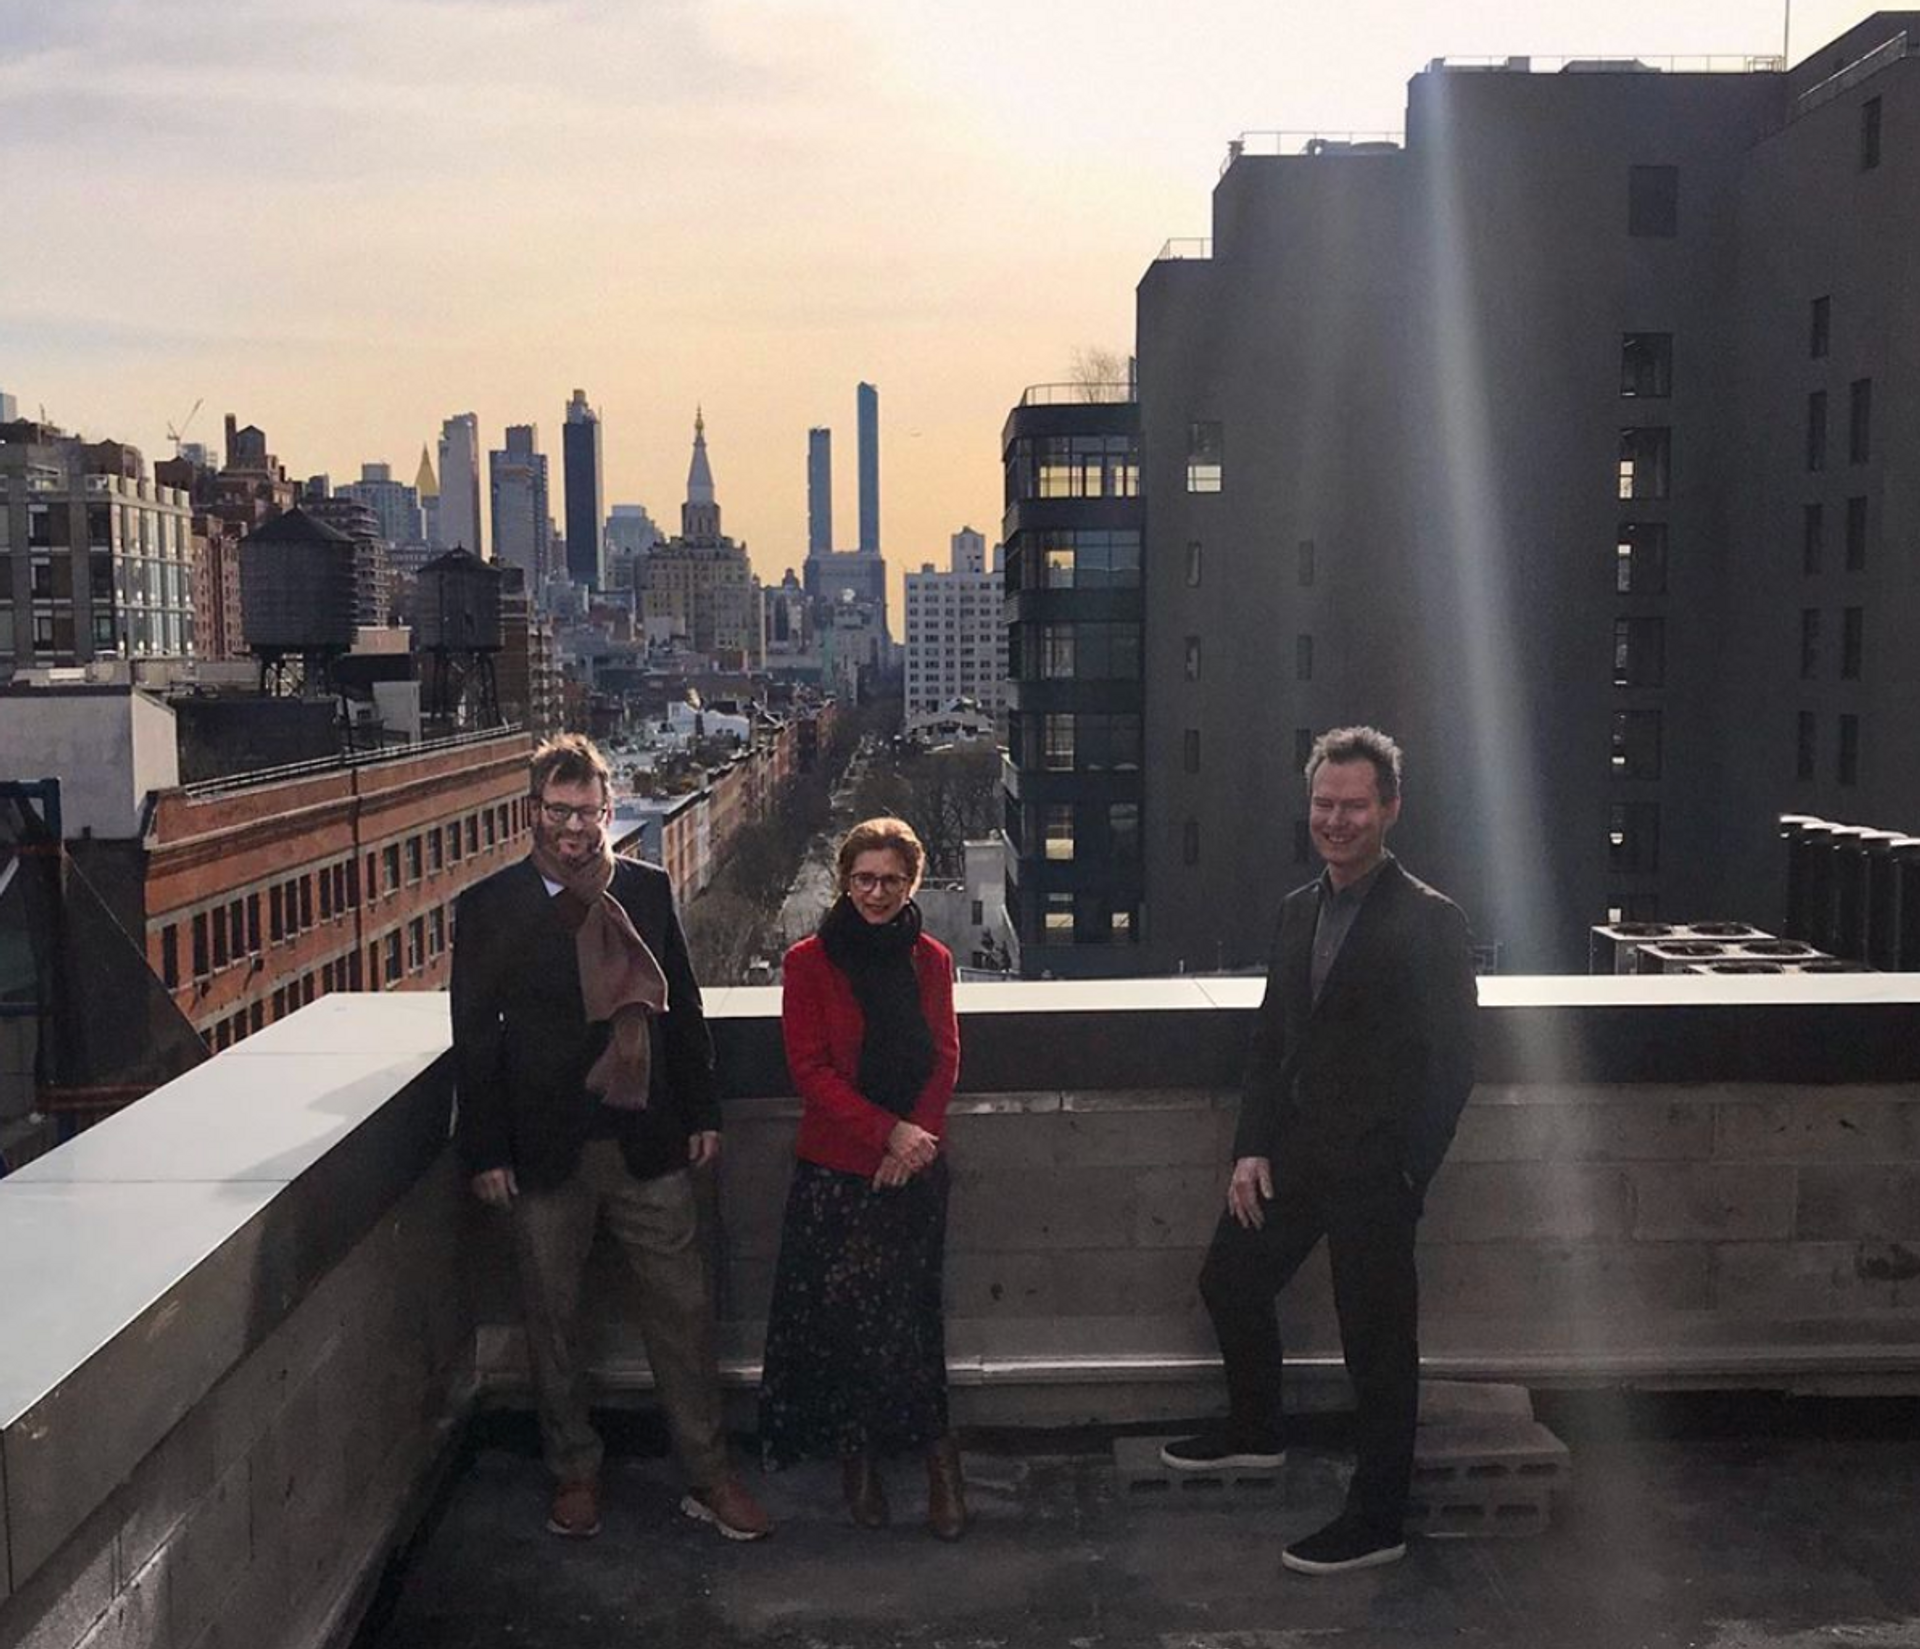 Iwan and Manuela Wirth and Marc Payot on the rooftop of Hauser & Wirth New York, 22nd Street, February 2020 Courtesy of Hauser & Wirth